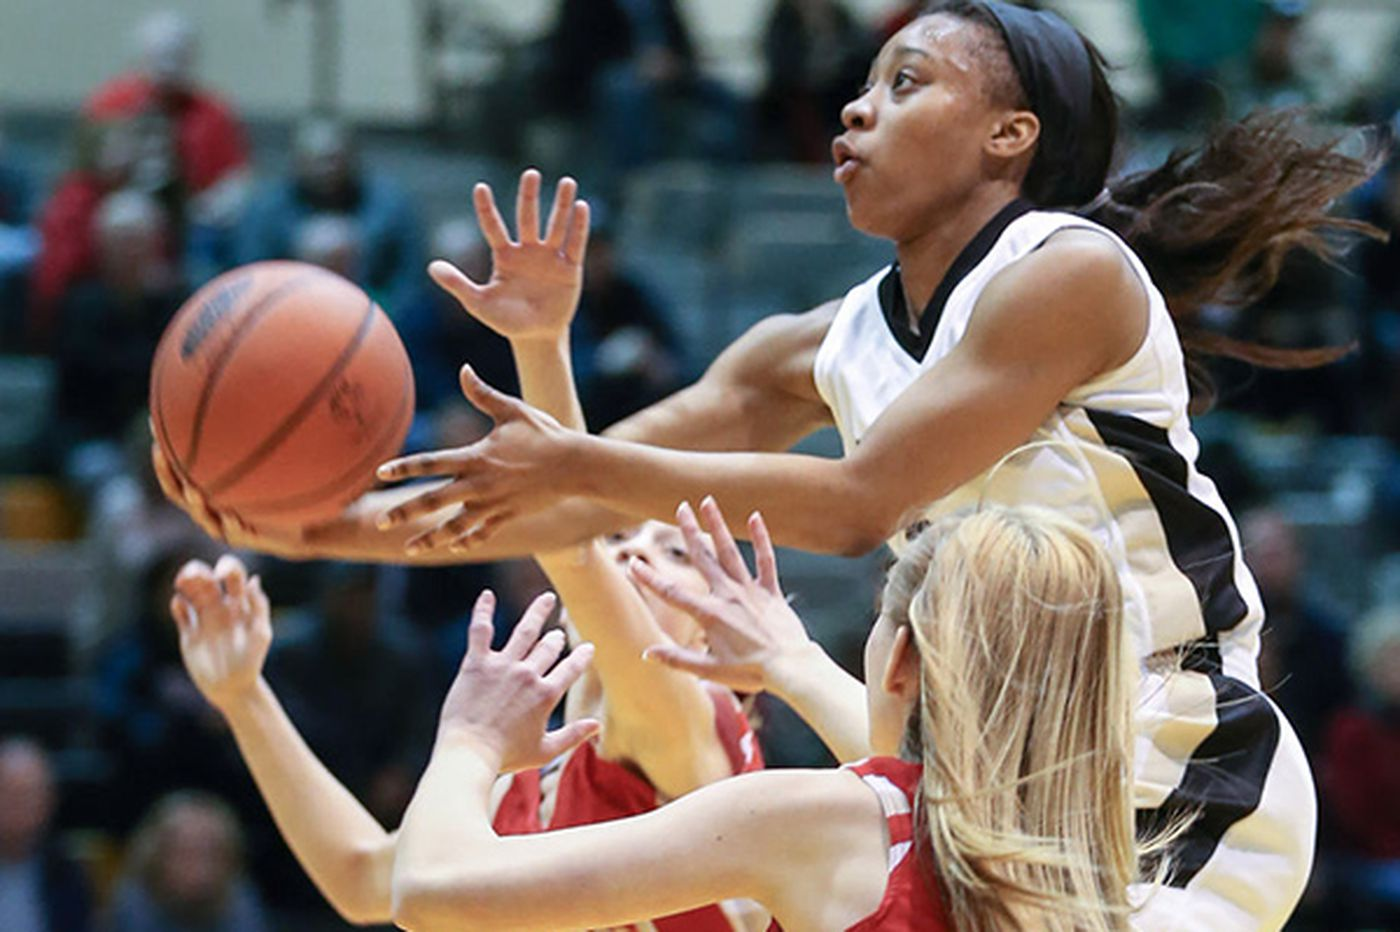 Neumann-Goretti girls one win away from elusive state title